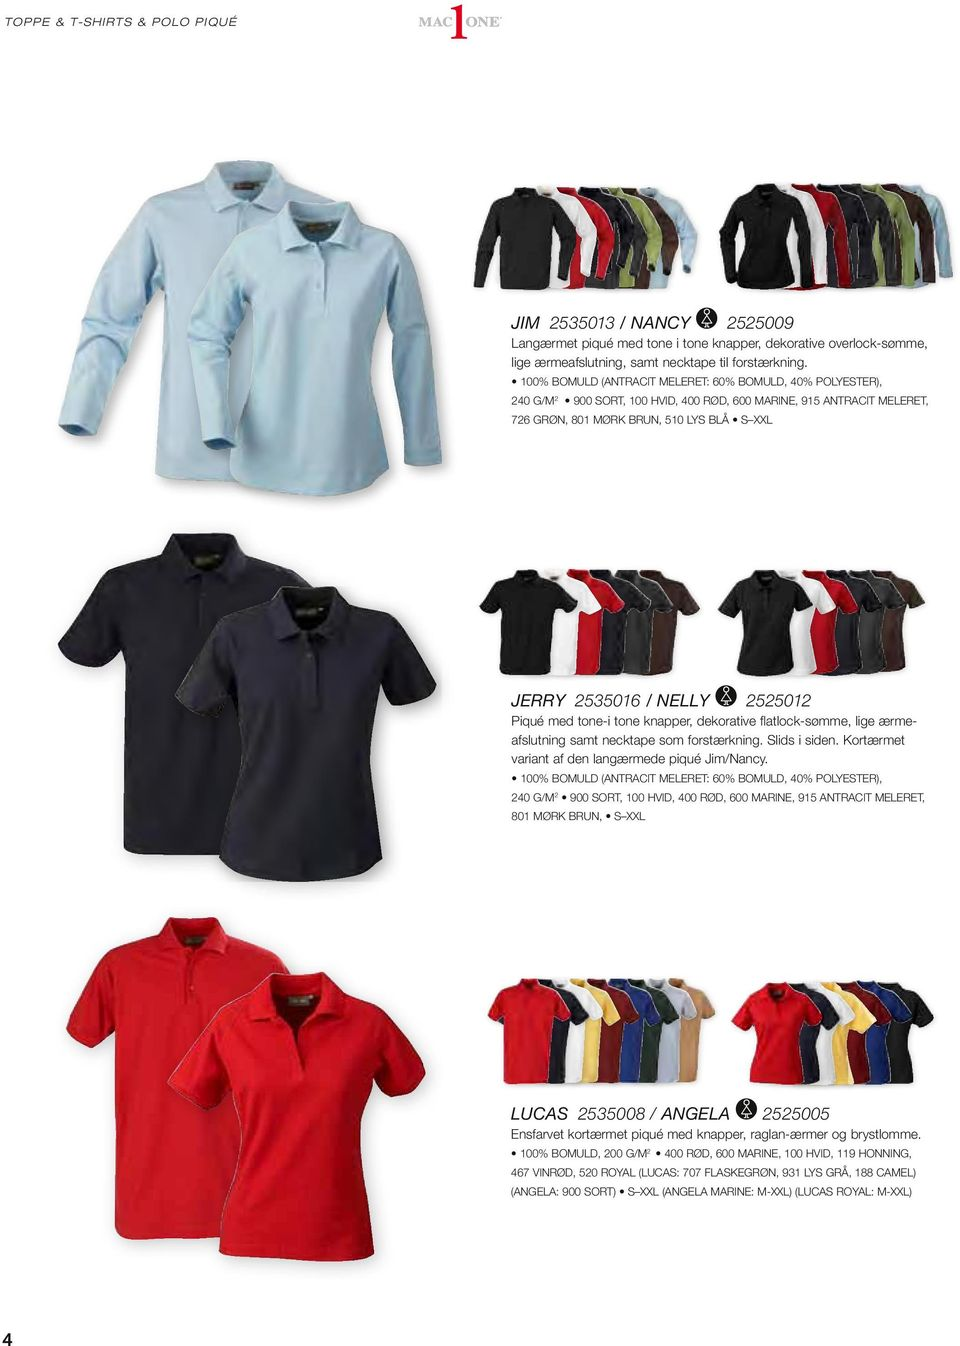 INDHOLD TOPPE, T SHIRTS & POLO PIQUÉ 4. CollegE 17 JAKKER